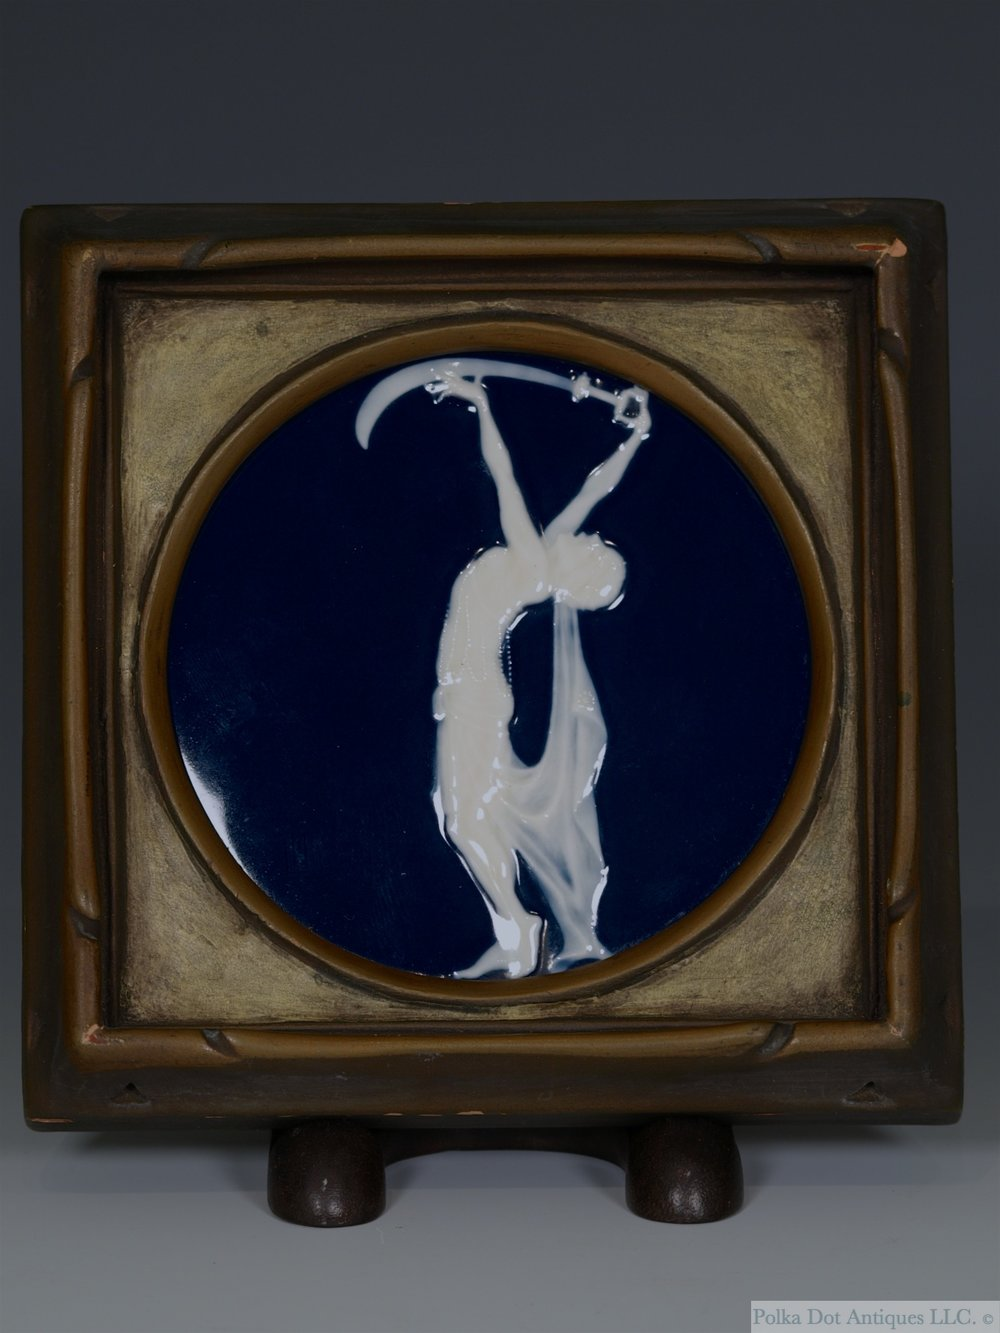 Rare Lois Whitcomb Rhead Pâte-sur-pâte Framed Plaque 'The Scimeter', 1920-22